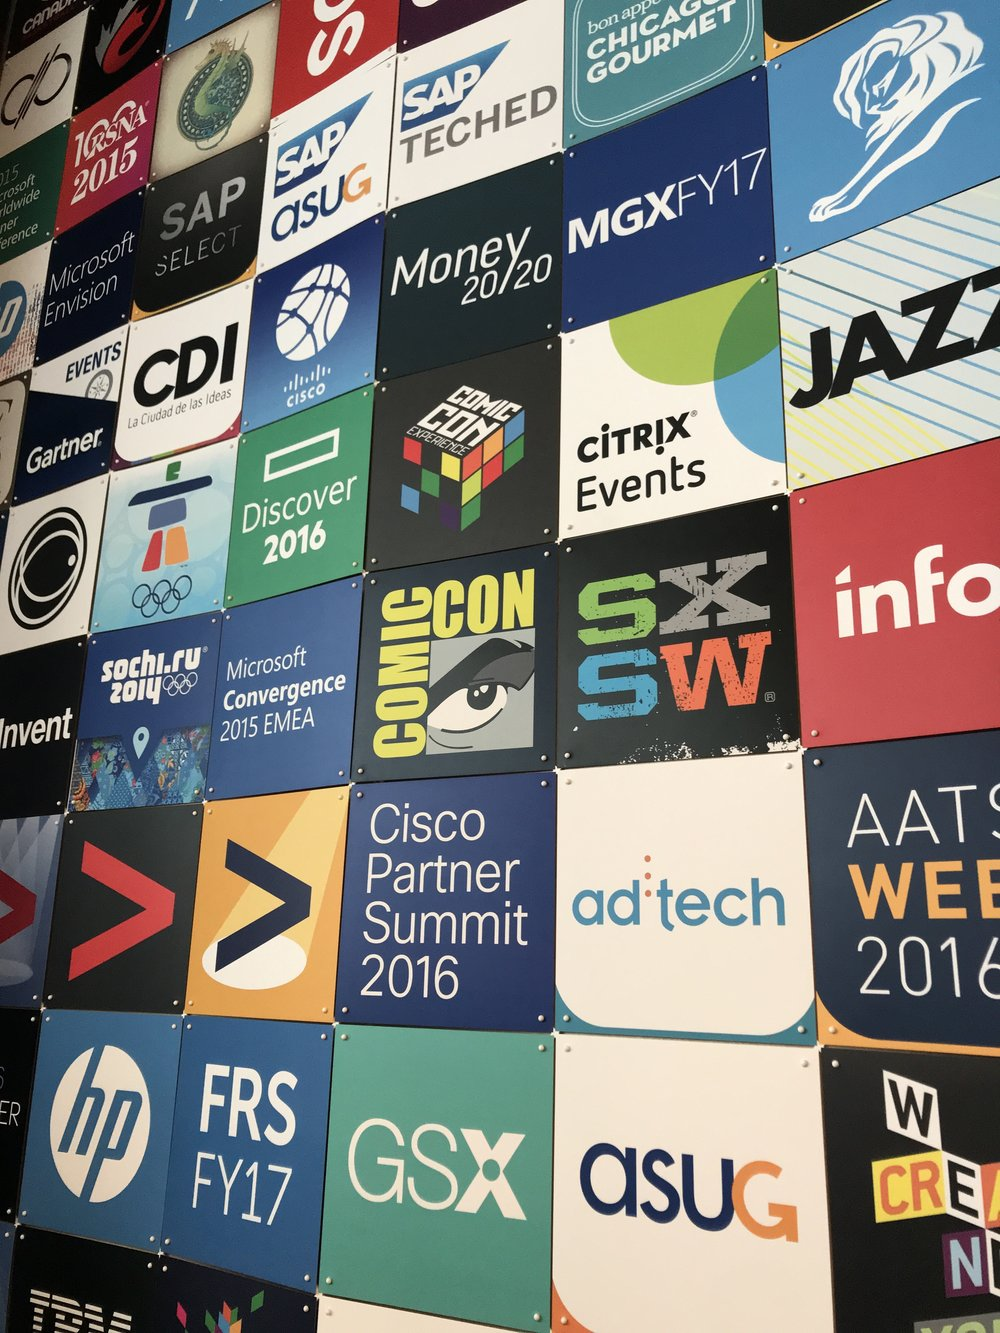 A collage of events and companies that Eventbase has worked with in the past. Events include the 2014 Winter Olympics, ComicCon, and SXSW, as well as companies such as Hewlett Packard and SAP.